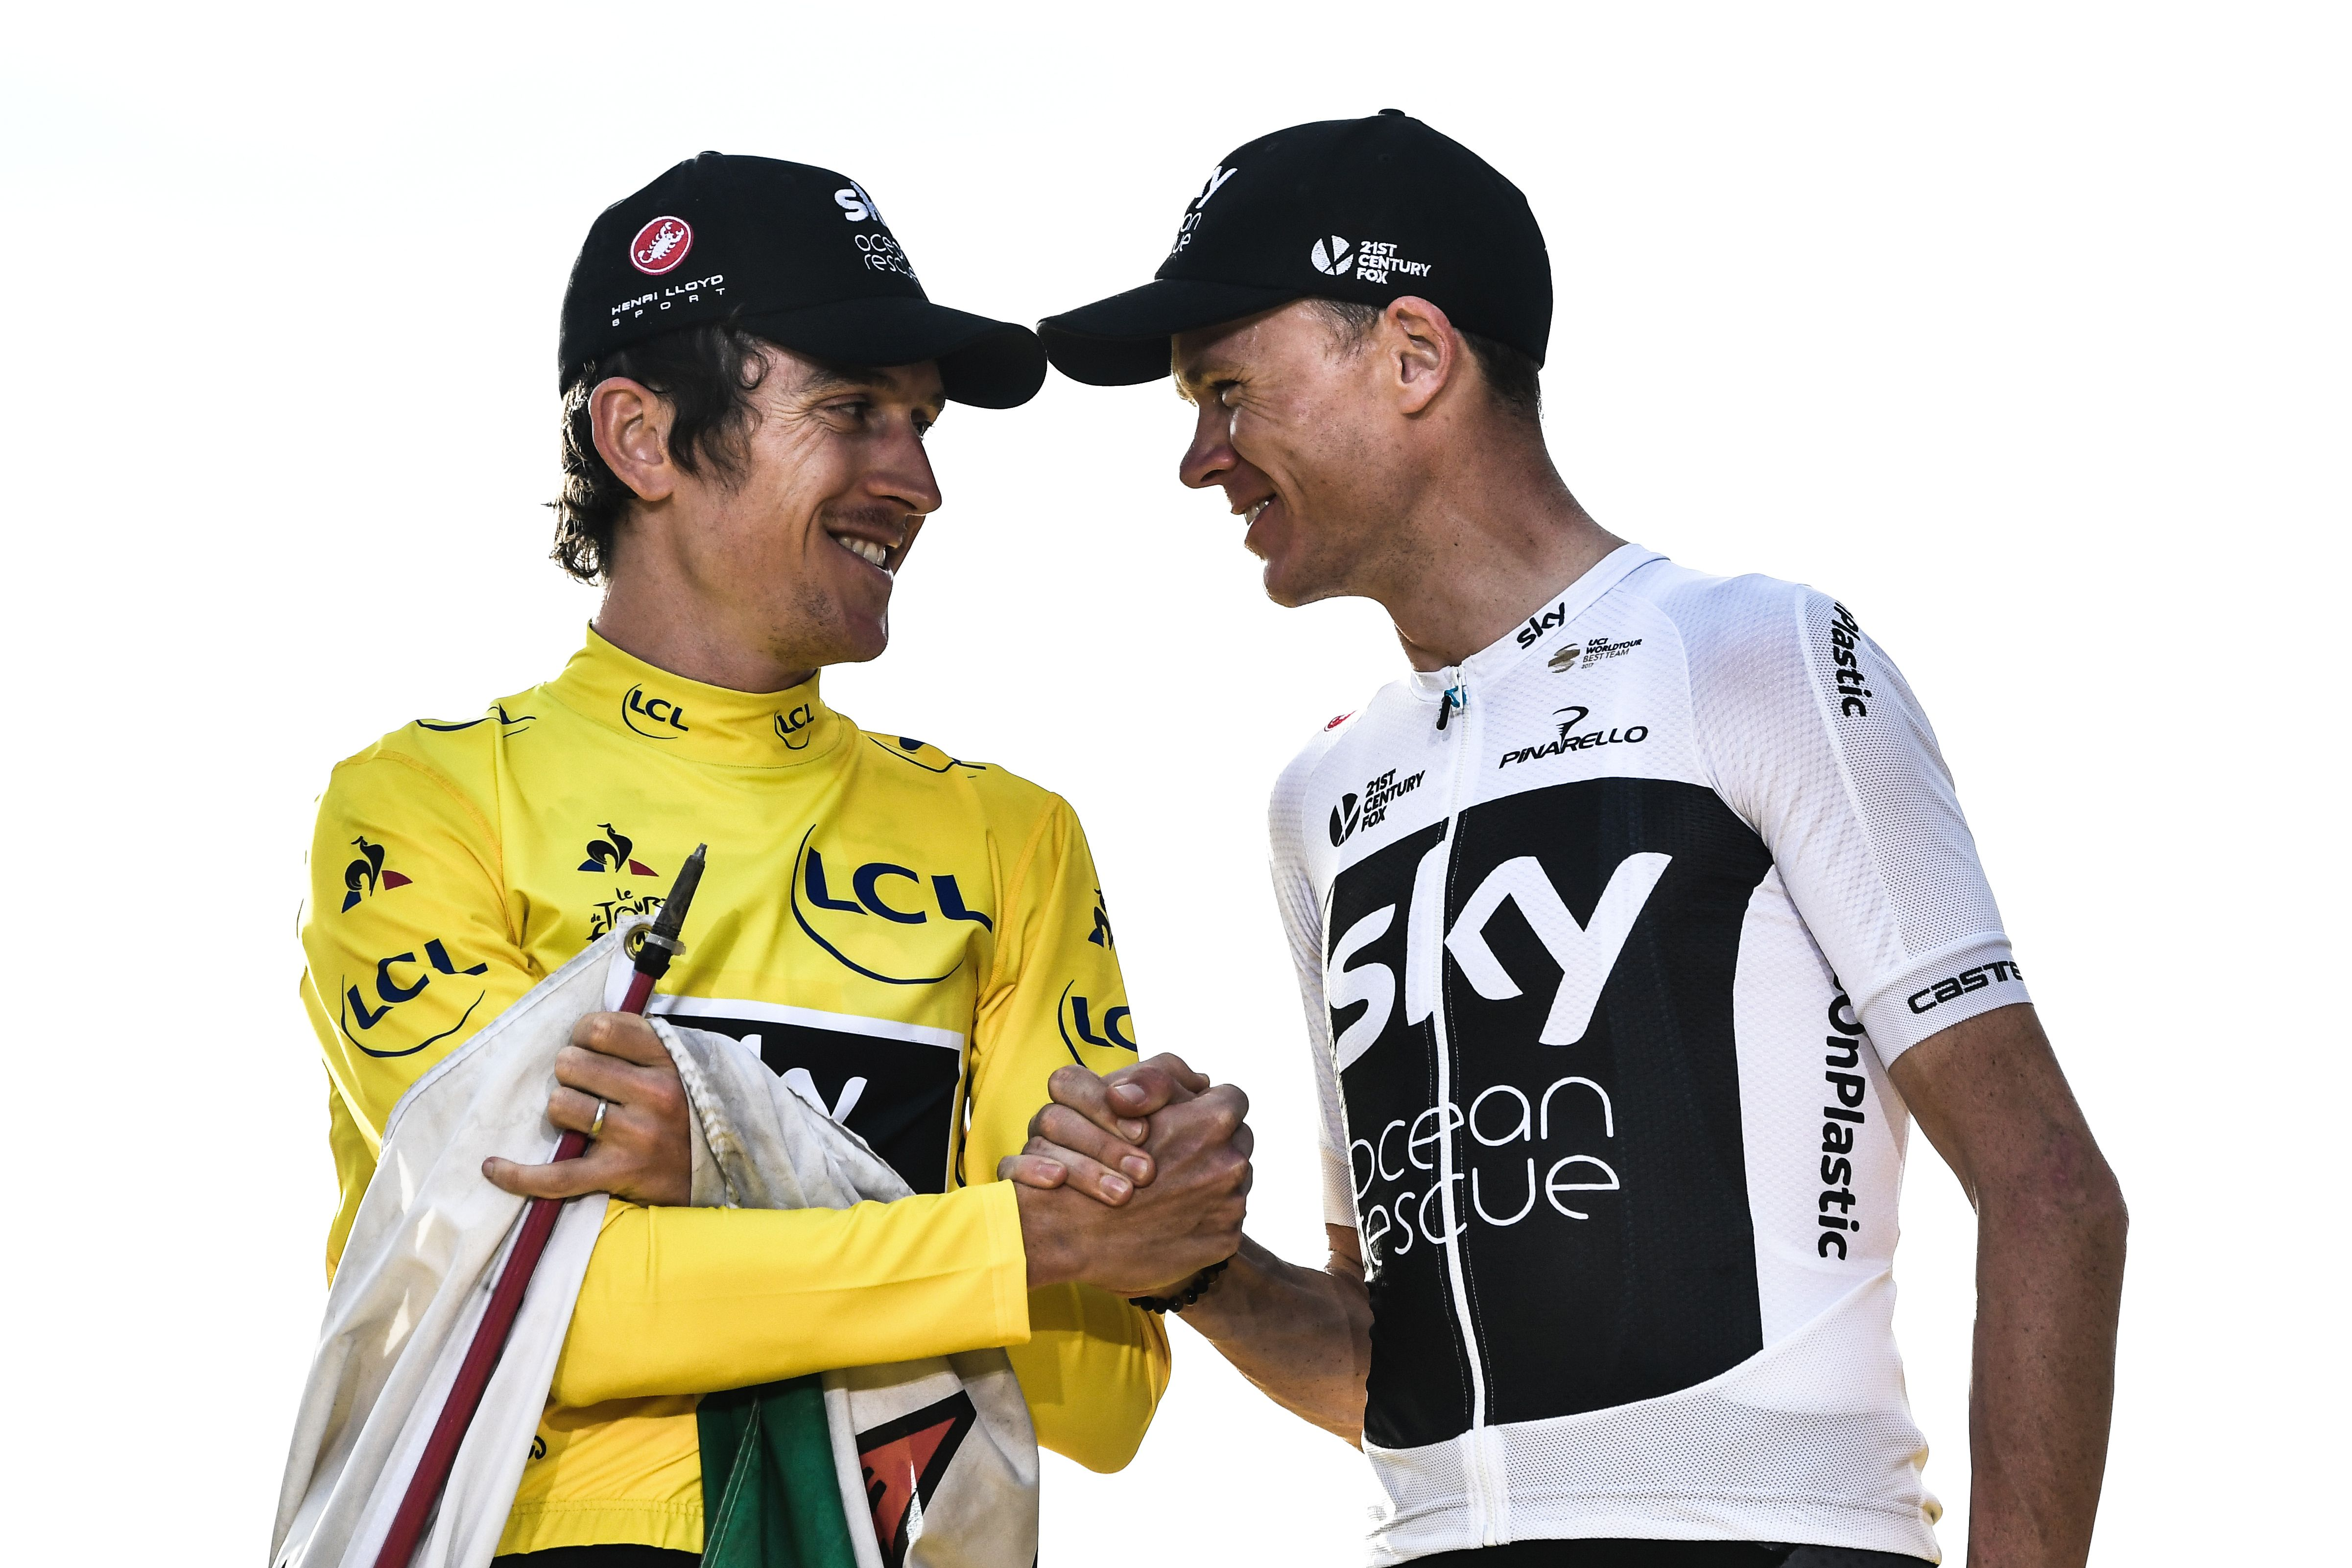 Ratcliffe's takeover of cycling giants Team Sky - which will be renamed Team Ineos - was completed on Tuesday